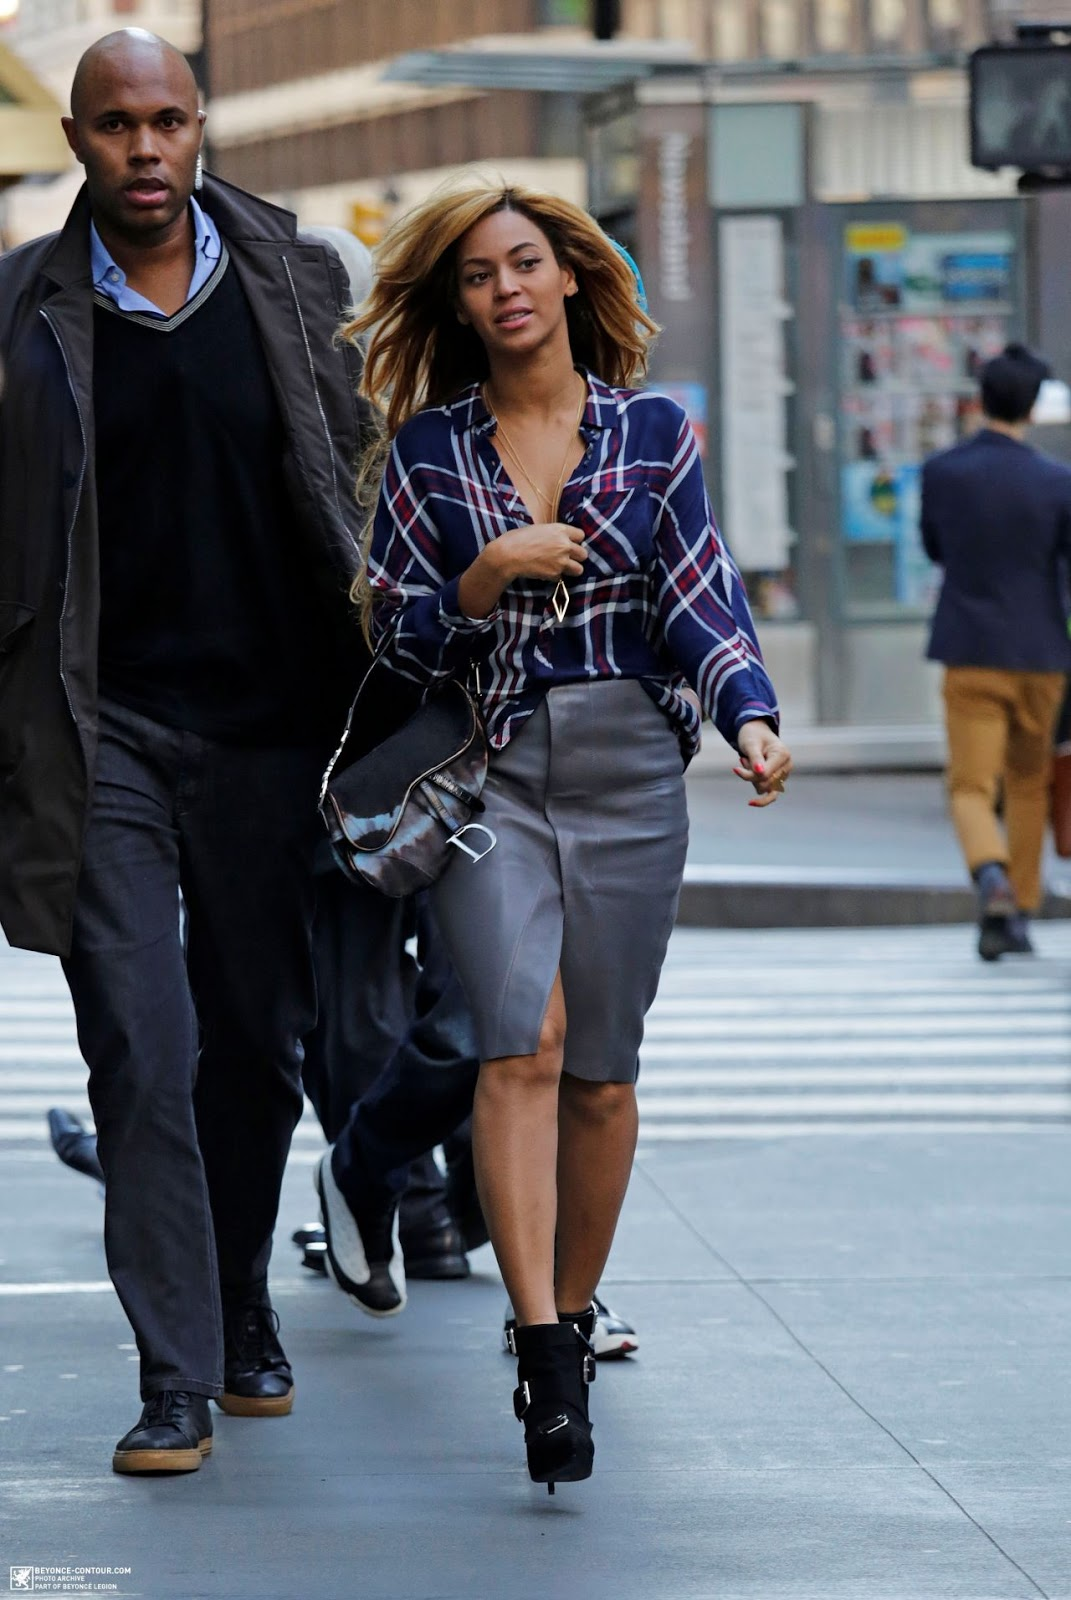 21 Best Beyonce S Street Style Outfits Geeks Fashion